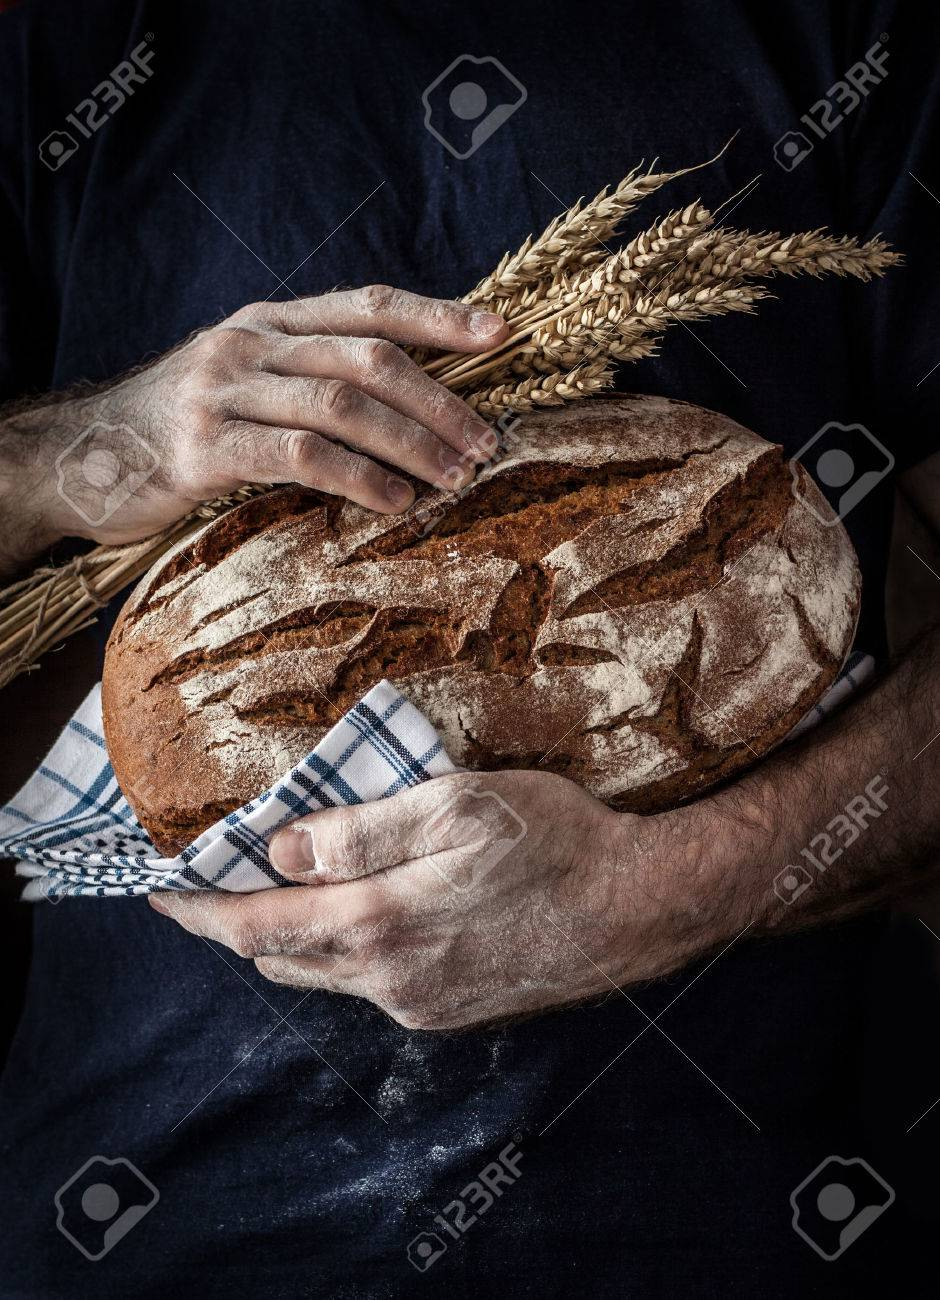 Baker man holding rustic organic loaf of bread and wheat in hands - rural bakery. Natural light, moody still life with free text space good for cover or poster. - 55317382